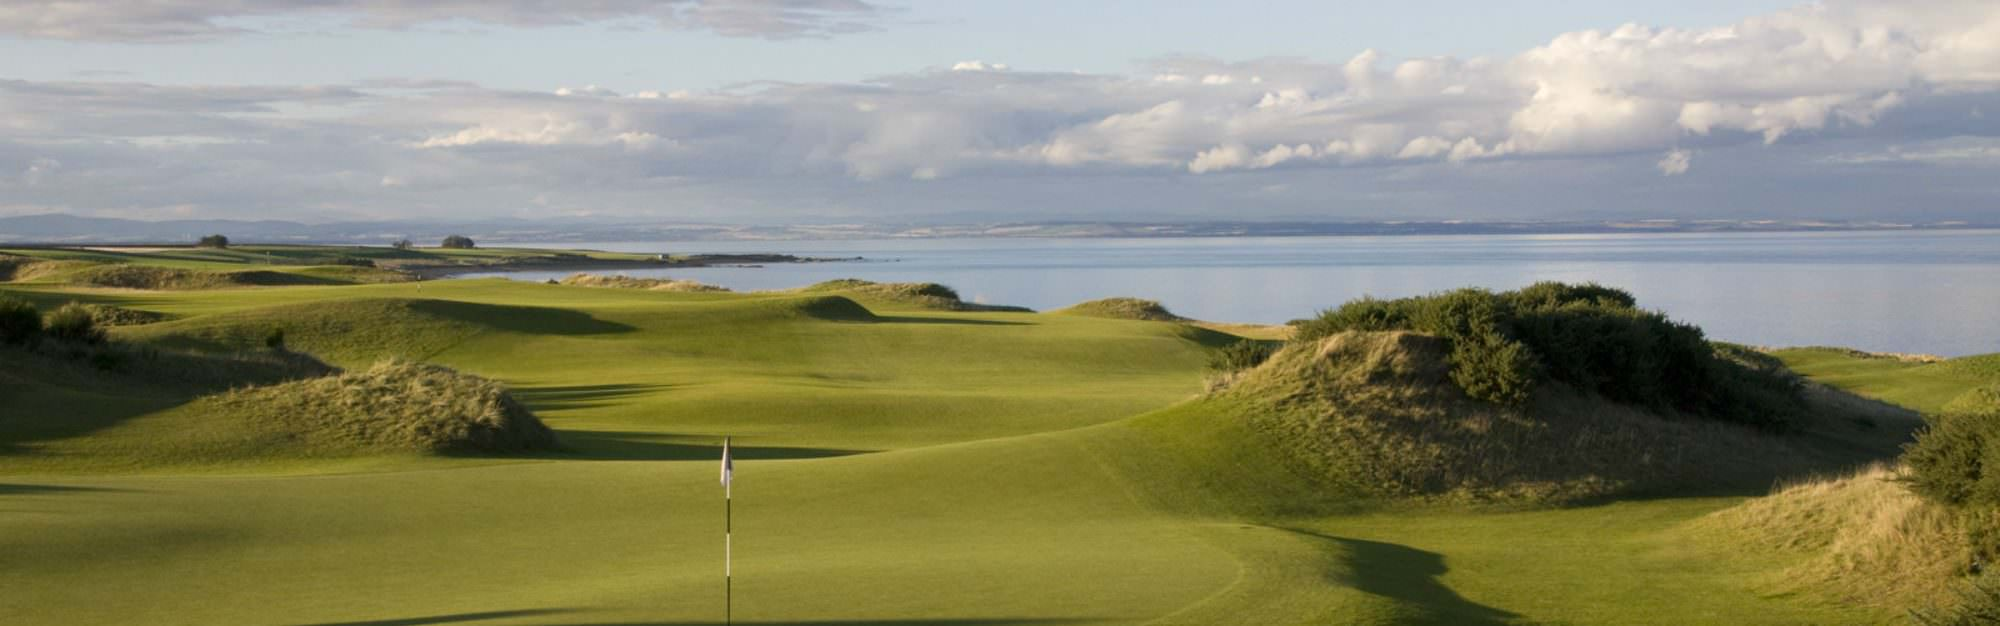 Is there a better place in the world to play golf?